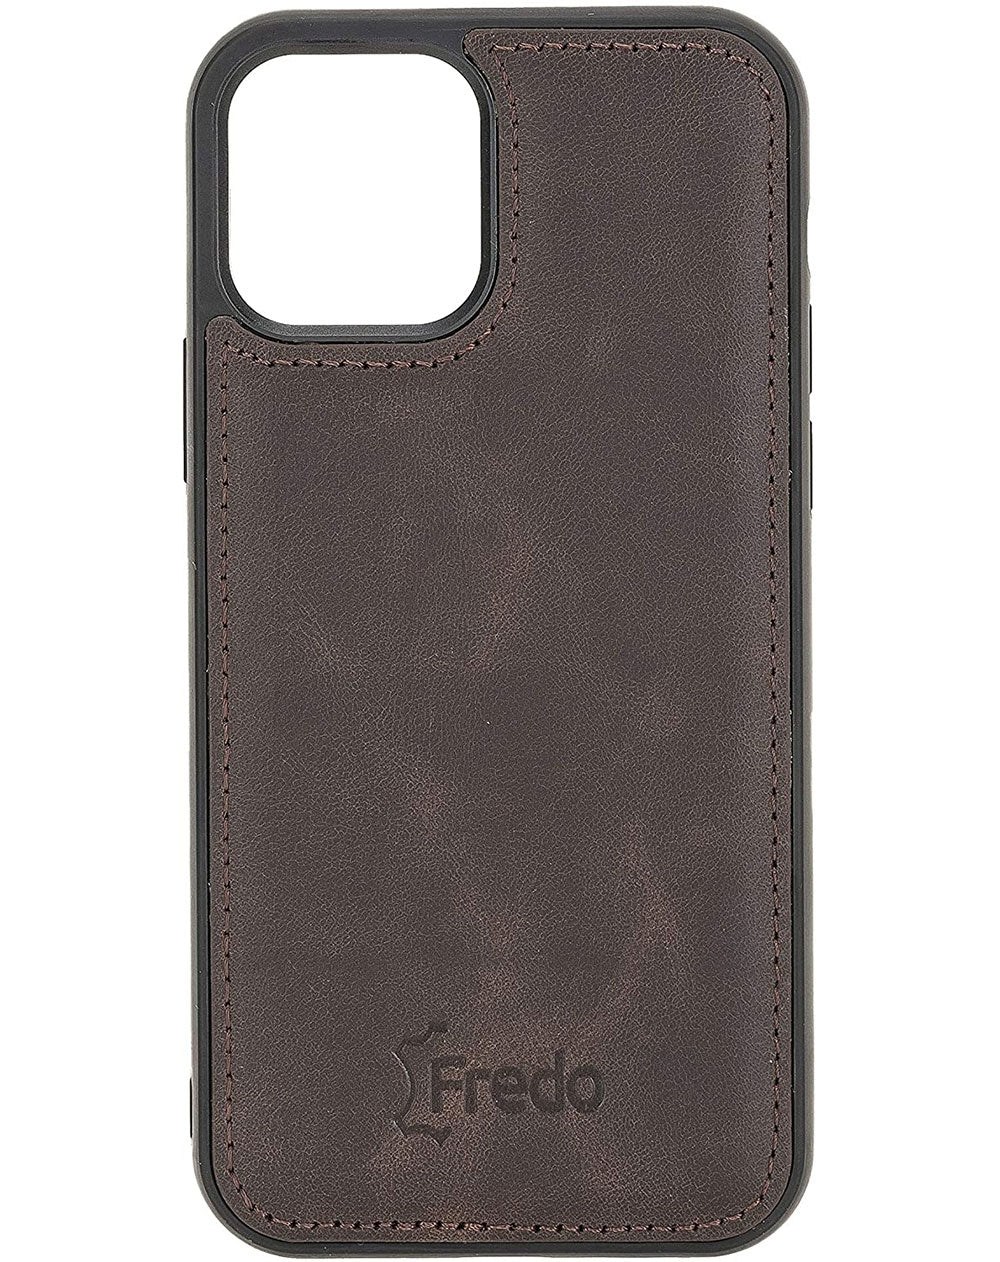 FREDO Lederhülle kompatibel mit iPhone 12 (6.1 - 5.4 - 6.7) Zoll Reflex Ultra Slim Cover Handyhülle für Apple iPhone 12 (6.1 - 5.4 - 6.7) inch Handytasche/Hand Made/-Vintage Braun-iPhone 12 Pro (6.1 Zoll)-0